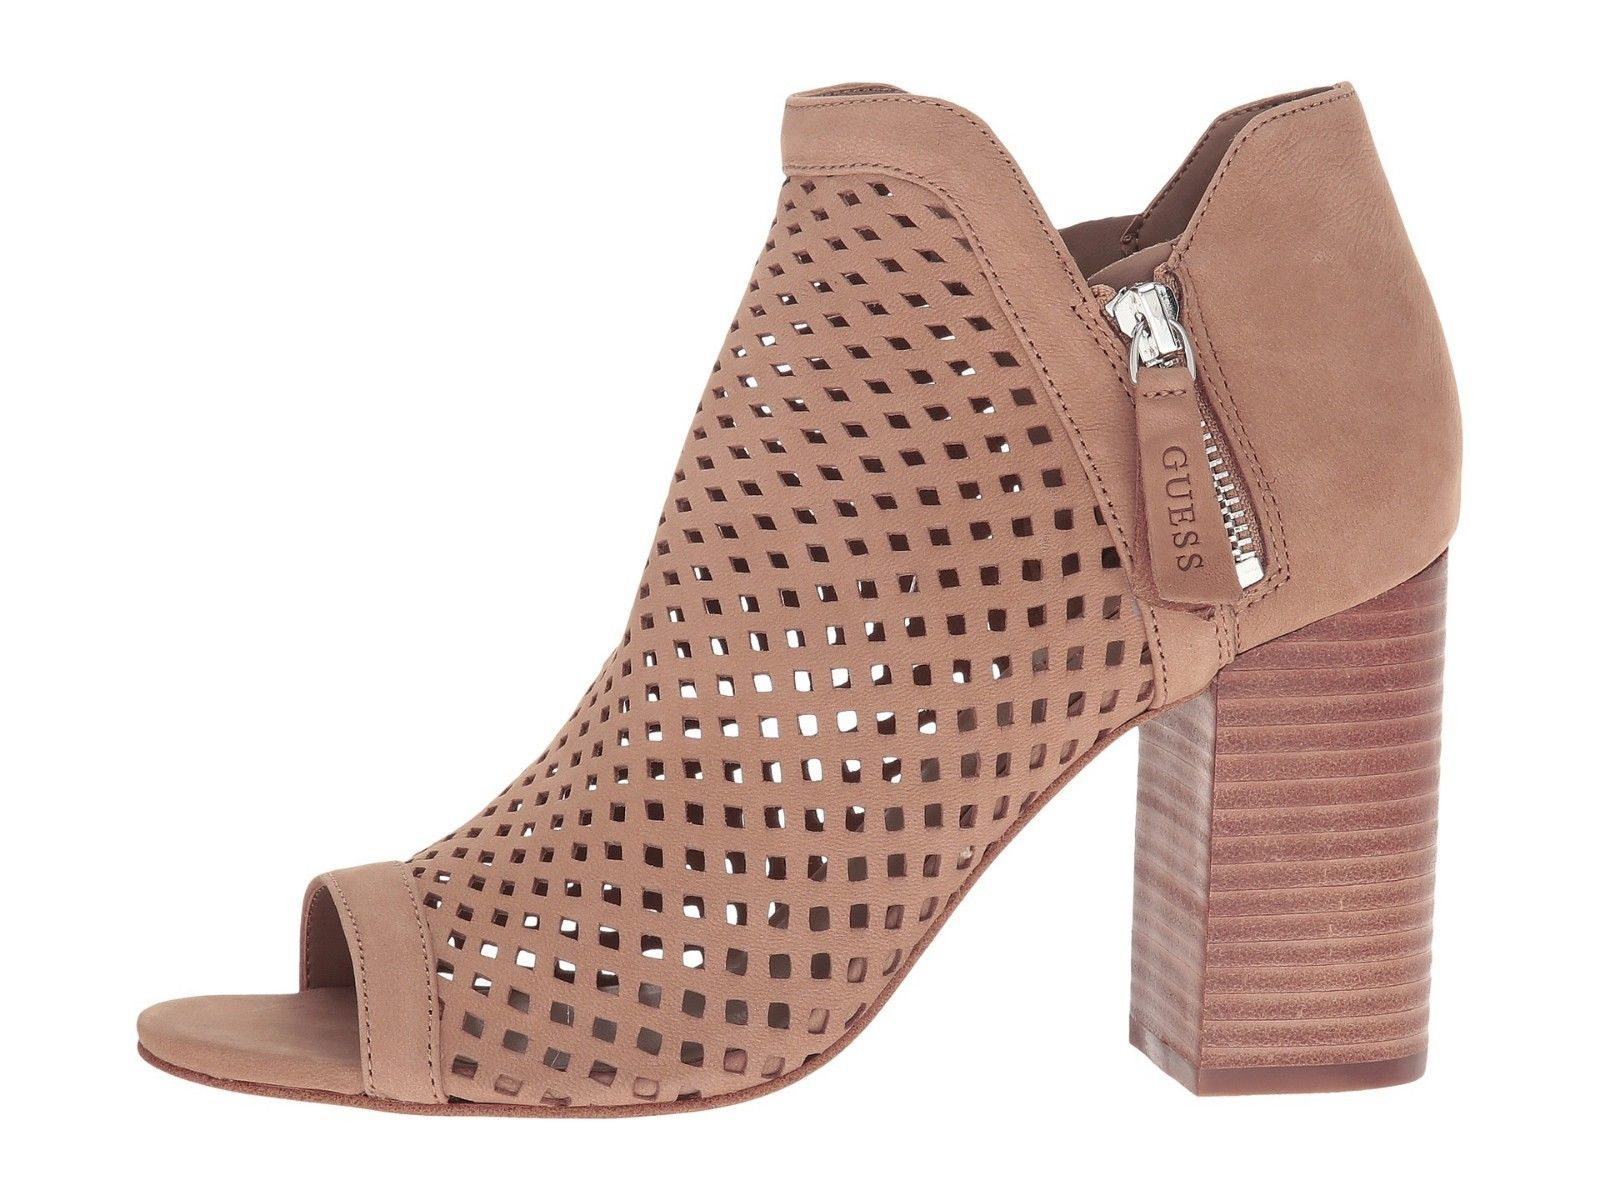 Guess Oana Perforated Leather V-Throat Peep-Toe Booties, Sizes 7.5-11 Taupe